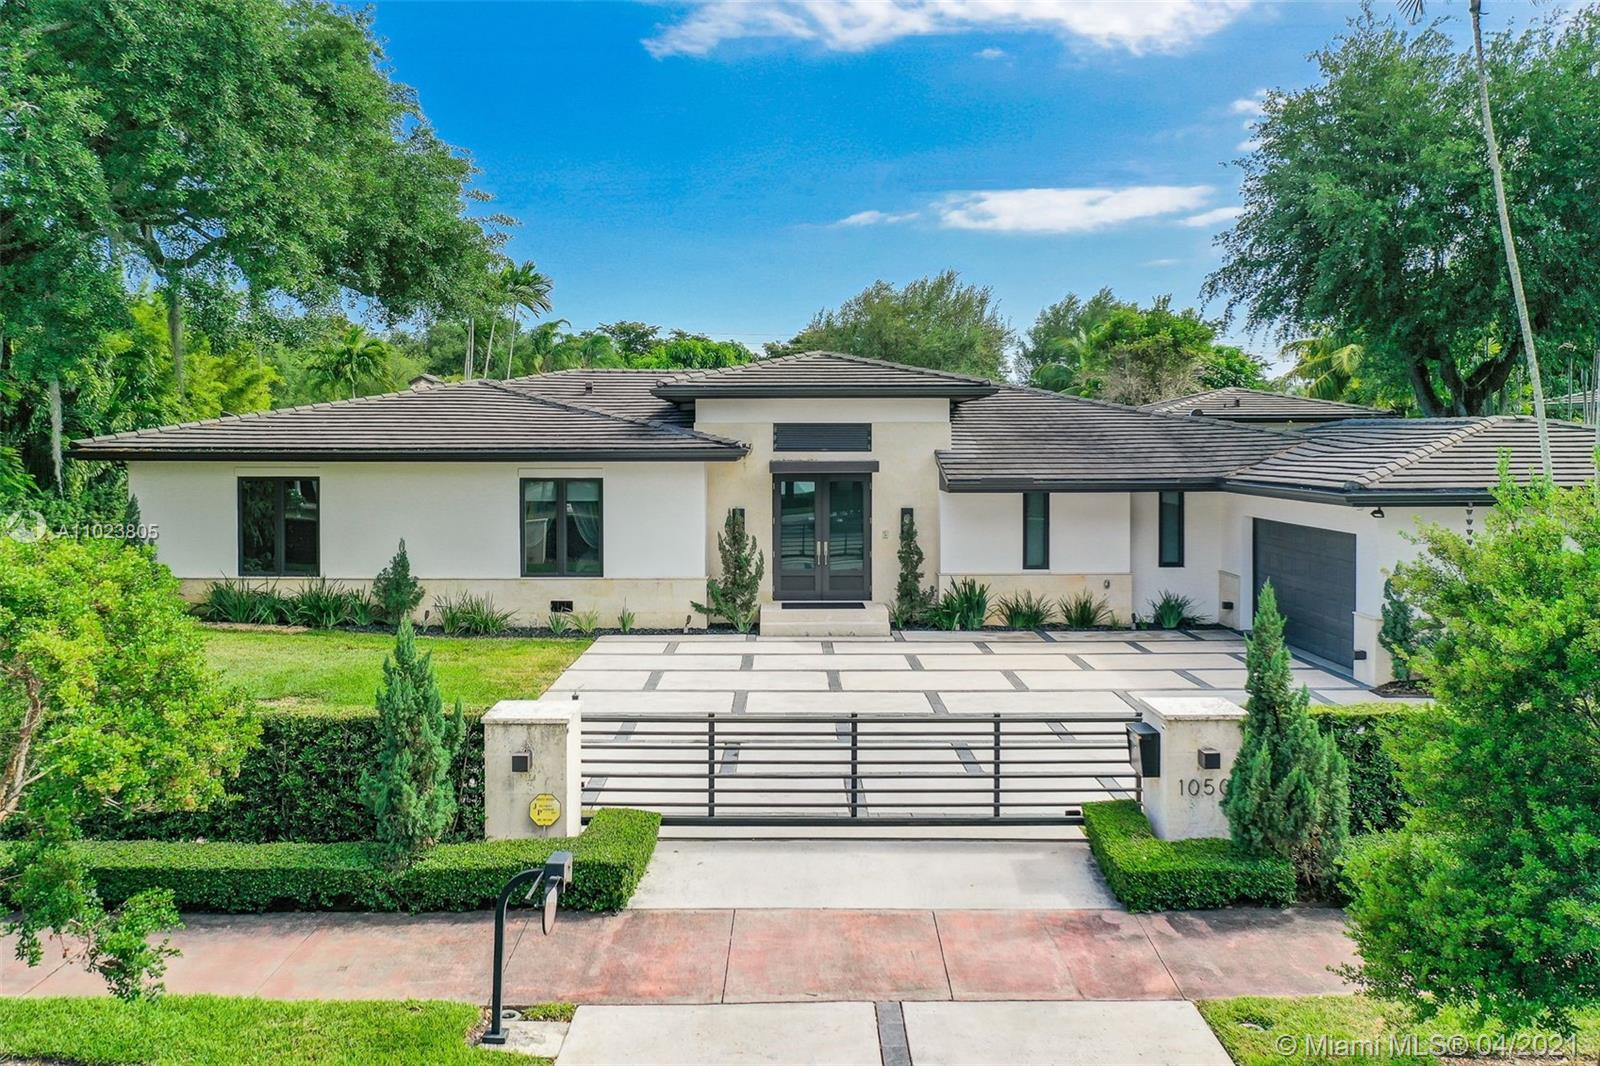 ~ EXPERIENCE UNDERSTATED ELEGANCE FOR AN EXCEPTIONAL INDOOR / OUTDOOR LIFESTYLE ON THE PRESTIGIOUS CORAL GABLES WATERWAY ~ EXPERTLY RENOVATED BY GIORGIO BALLI IN 2017 ~ THIS 5 BED / 5.5 BATH GATED HOME HAS EVERYTHING YOU NEED ~ TREMENDOUS COVERED TERRACE, RESORT STYLE POOL, & CABANA PERFECT FOR ENTERTAINING ~ IMPACT GLASS WINDOWS & DOORS ALLOW FOR NATURAL LIGHT IN EVERY ROOM ~ 36 x 36 LIMESTONE FLOORING IN LIVING AREAS ~ MIA CUCINA LACQUER KITCHEN W/ OVERSIZED MARBLE ISLAND & QUARTZ COUNTERTOPS ~ ALL SUBZERO & WOLF APPLIANCES ~ GENEROUS MASTER SUITE W/ 2 WALK-IN CLOSETS ~ PRIVATE GUEST SUITE W/ EASY OUTDOOR ACCESS ~ FOYER ENTRY, FORMAL LIVING & DINING ROOMS ~ ISOLATED SERVICE WING & 2 CAR GARAGE W/ COMPLETE ORGANIZATION ~ FULL HOUSE GENERATOR ~ THIS FANTASTIC HOME CHECKS ALL THE BOXES!!! ~